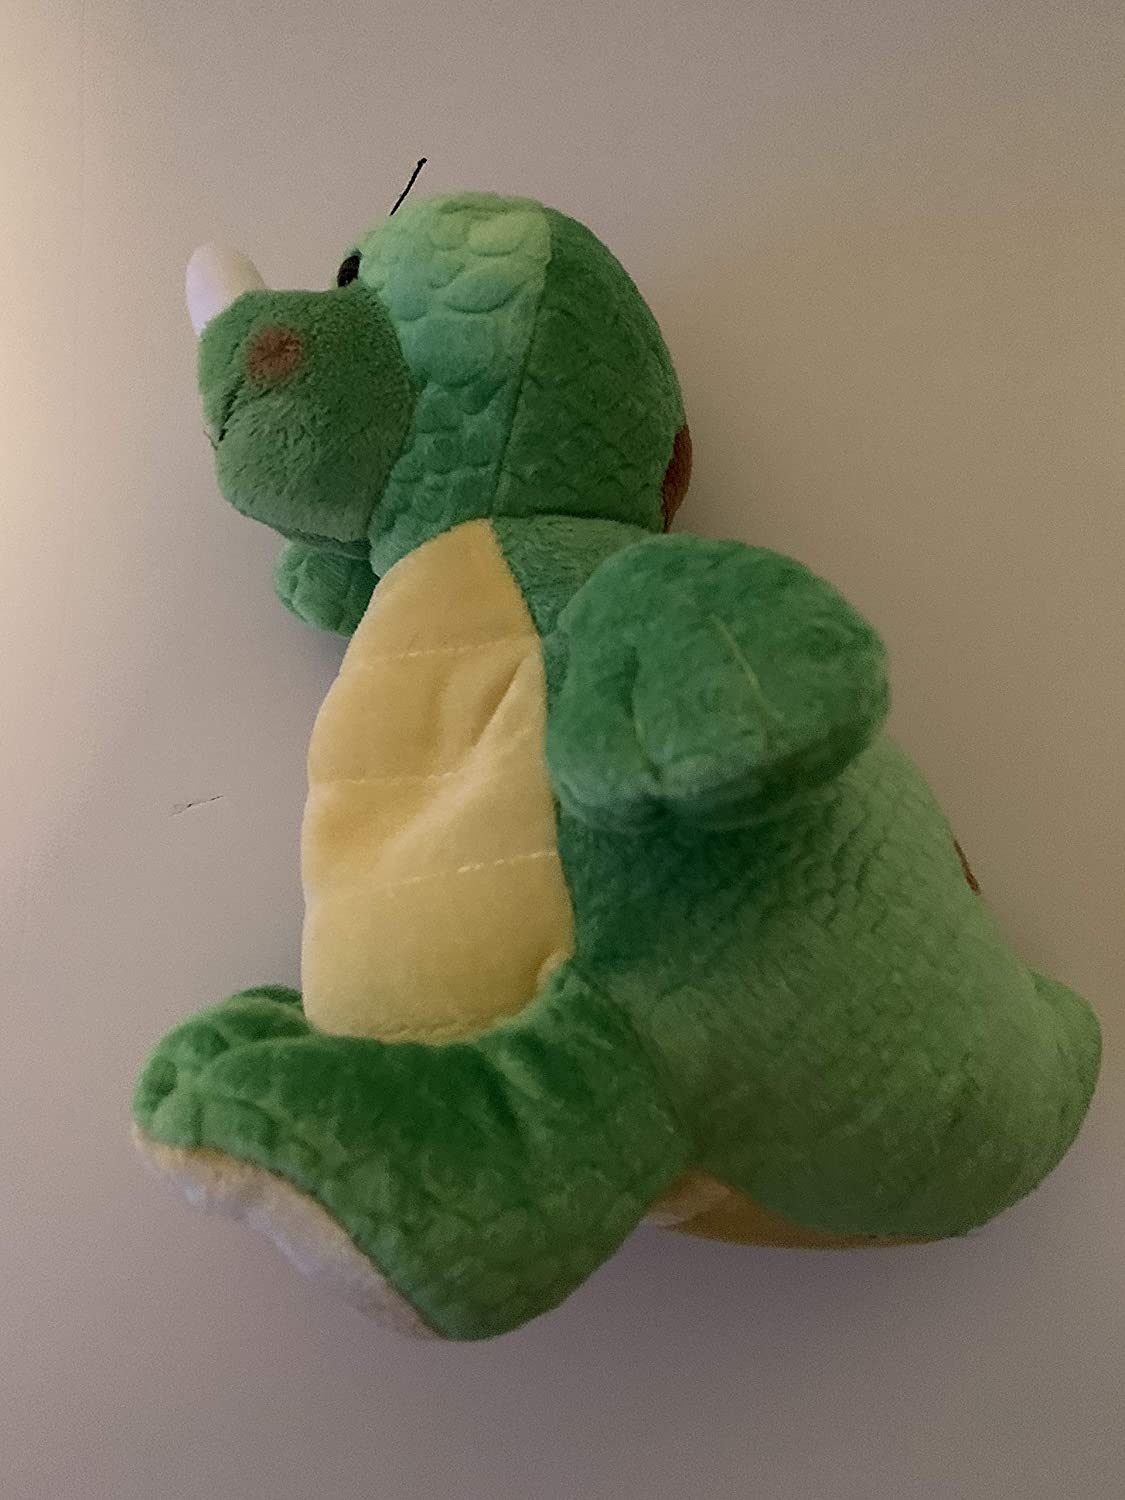 sensory toy weighted stuffed animal WEIGHTED PLUSH DINOSAUR with 2 lbs